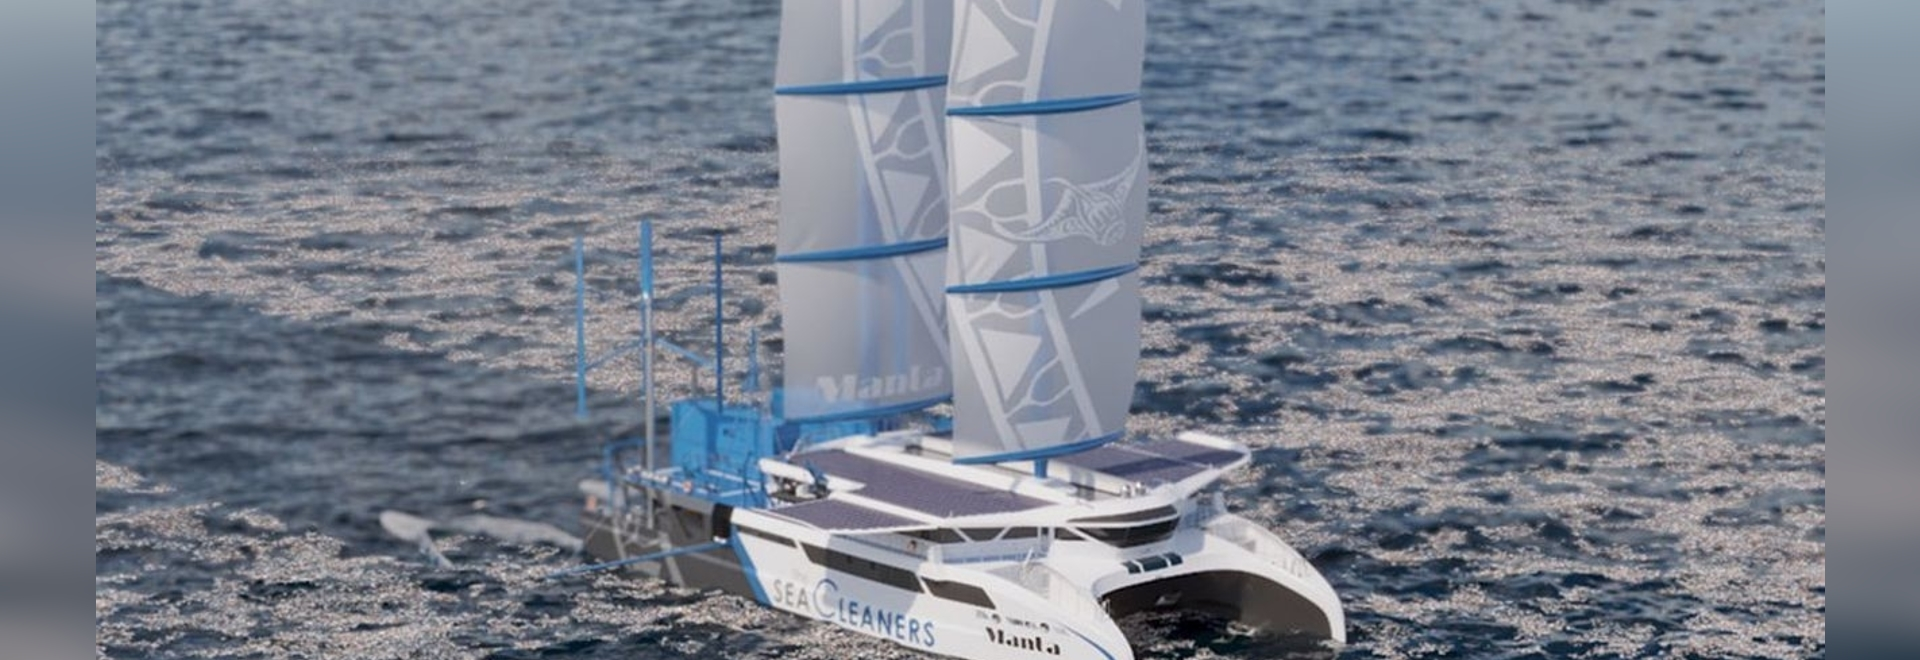 'Manta': a giant sailboat on the attack of oceanic plastic pollution